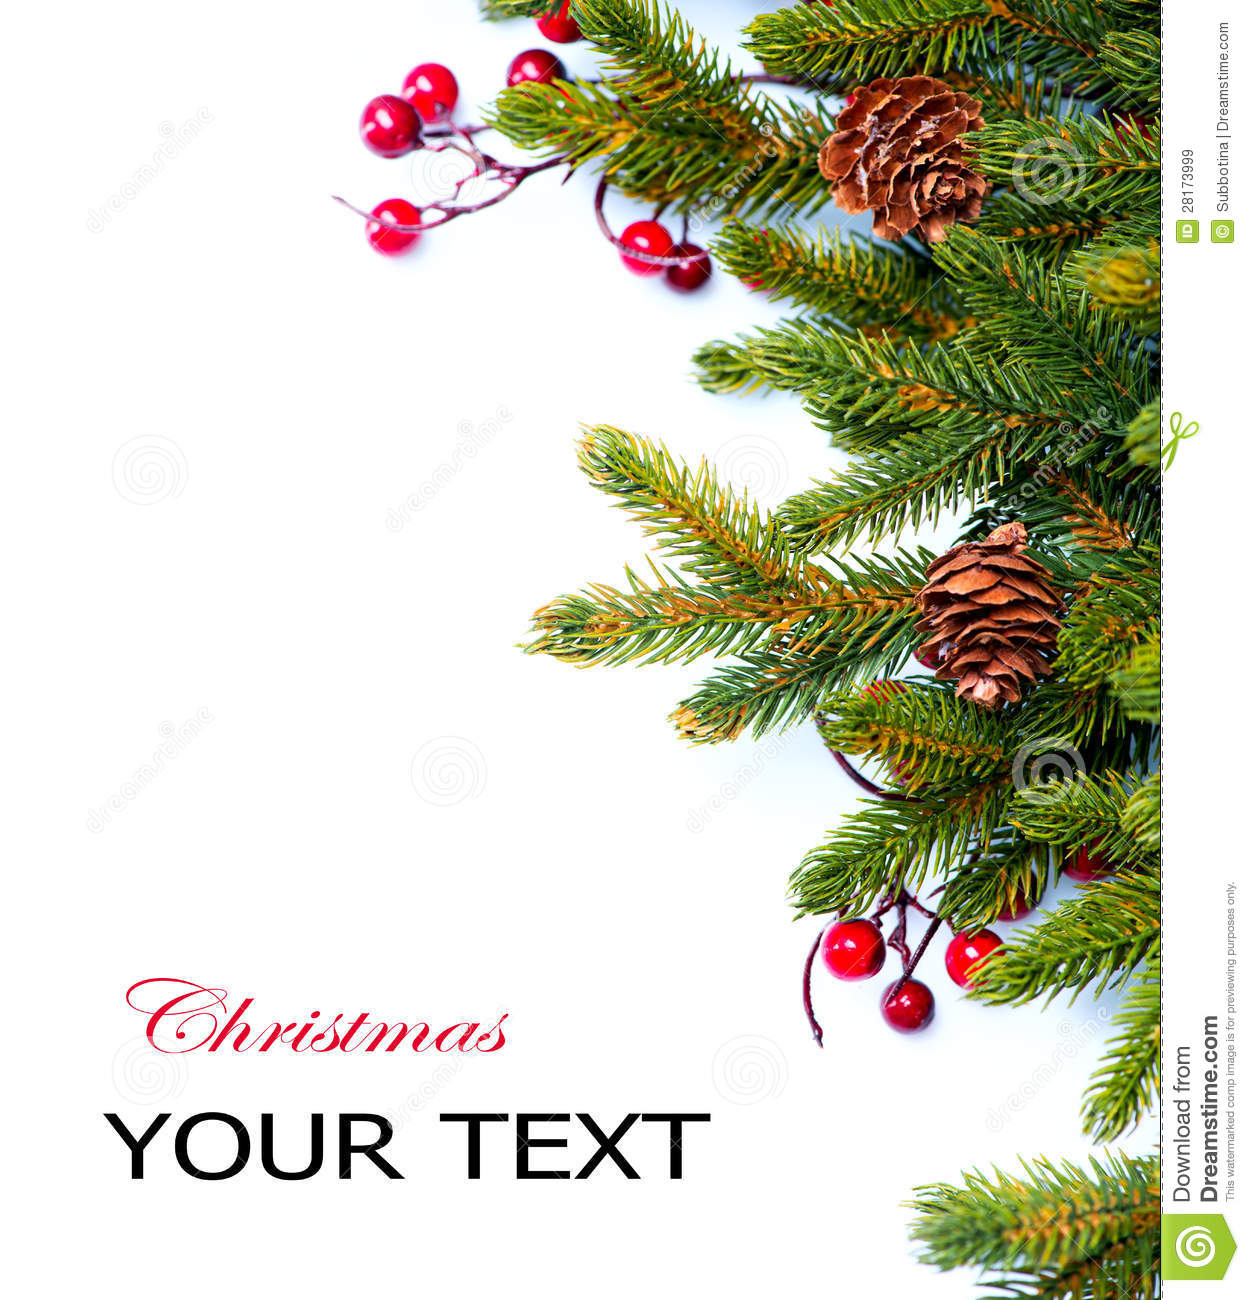 Christmas. Fir Tree Border Design Royalty Free Stock ...